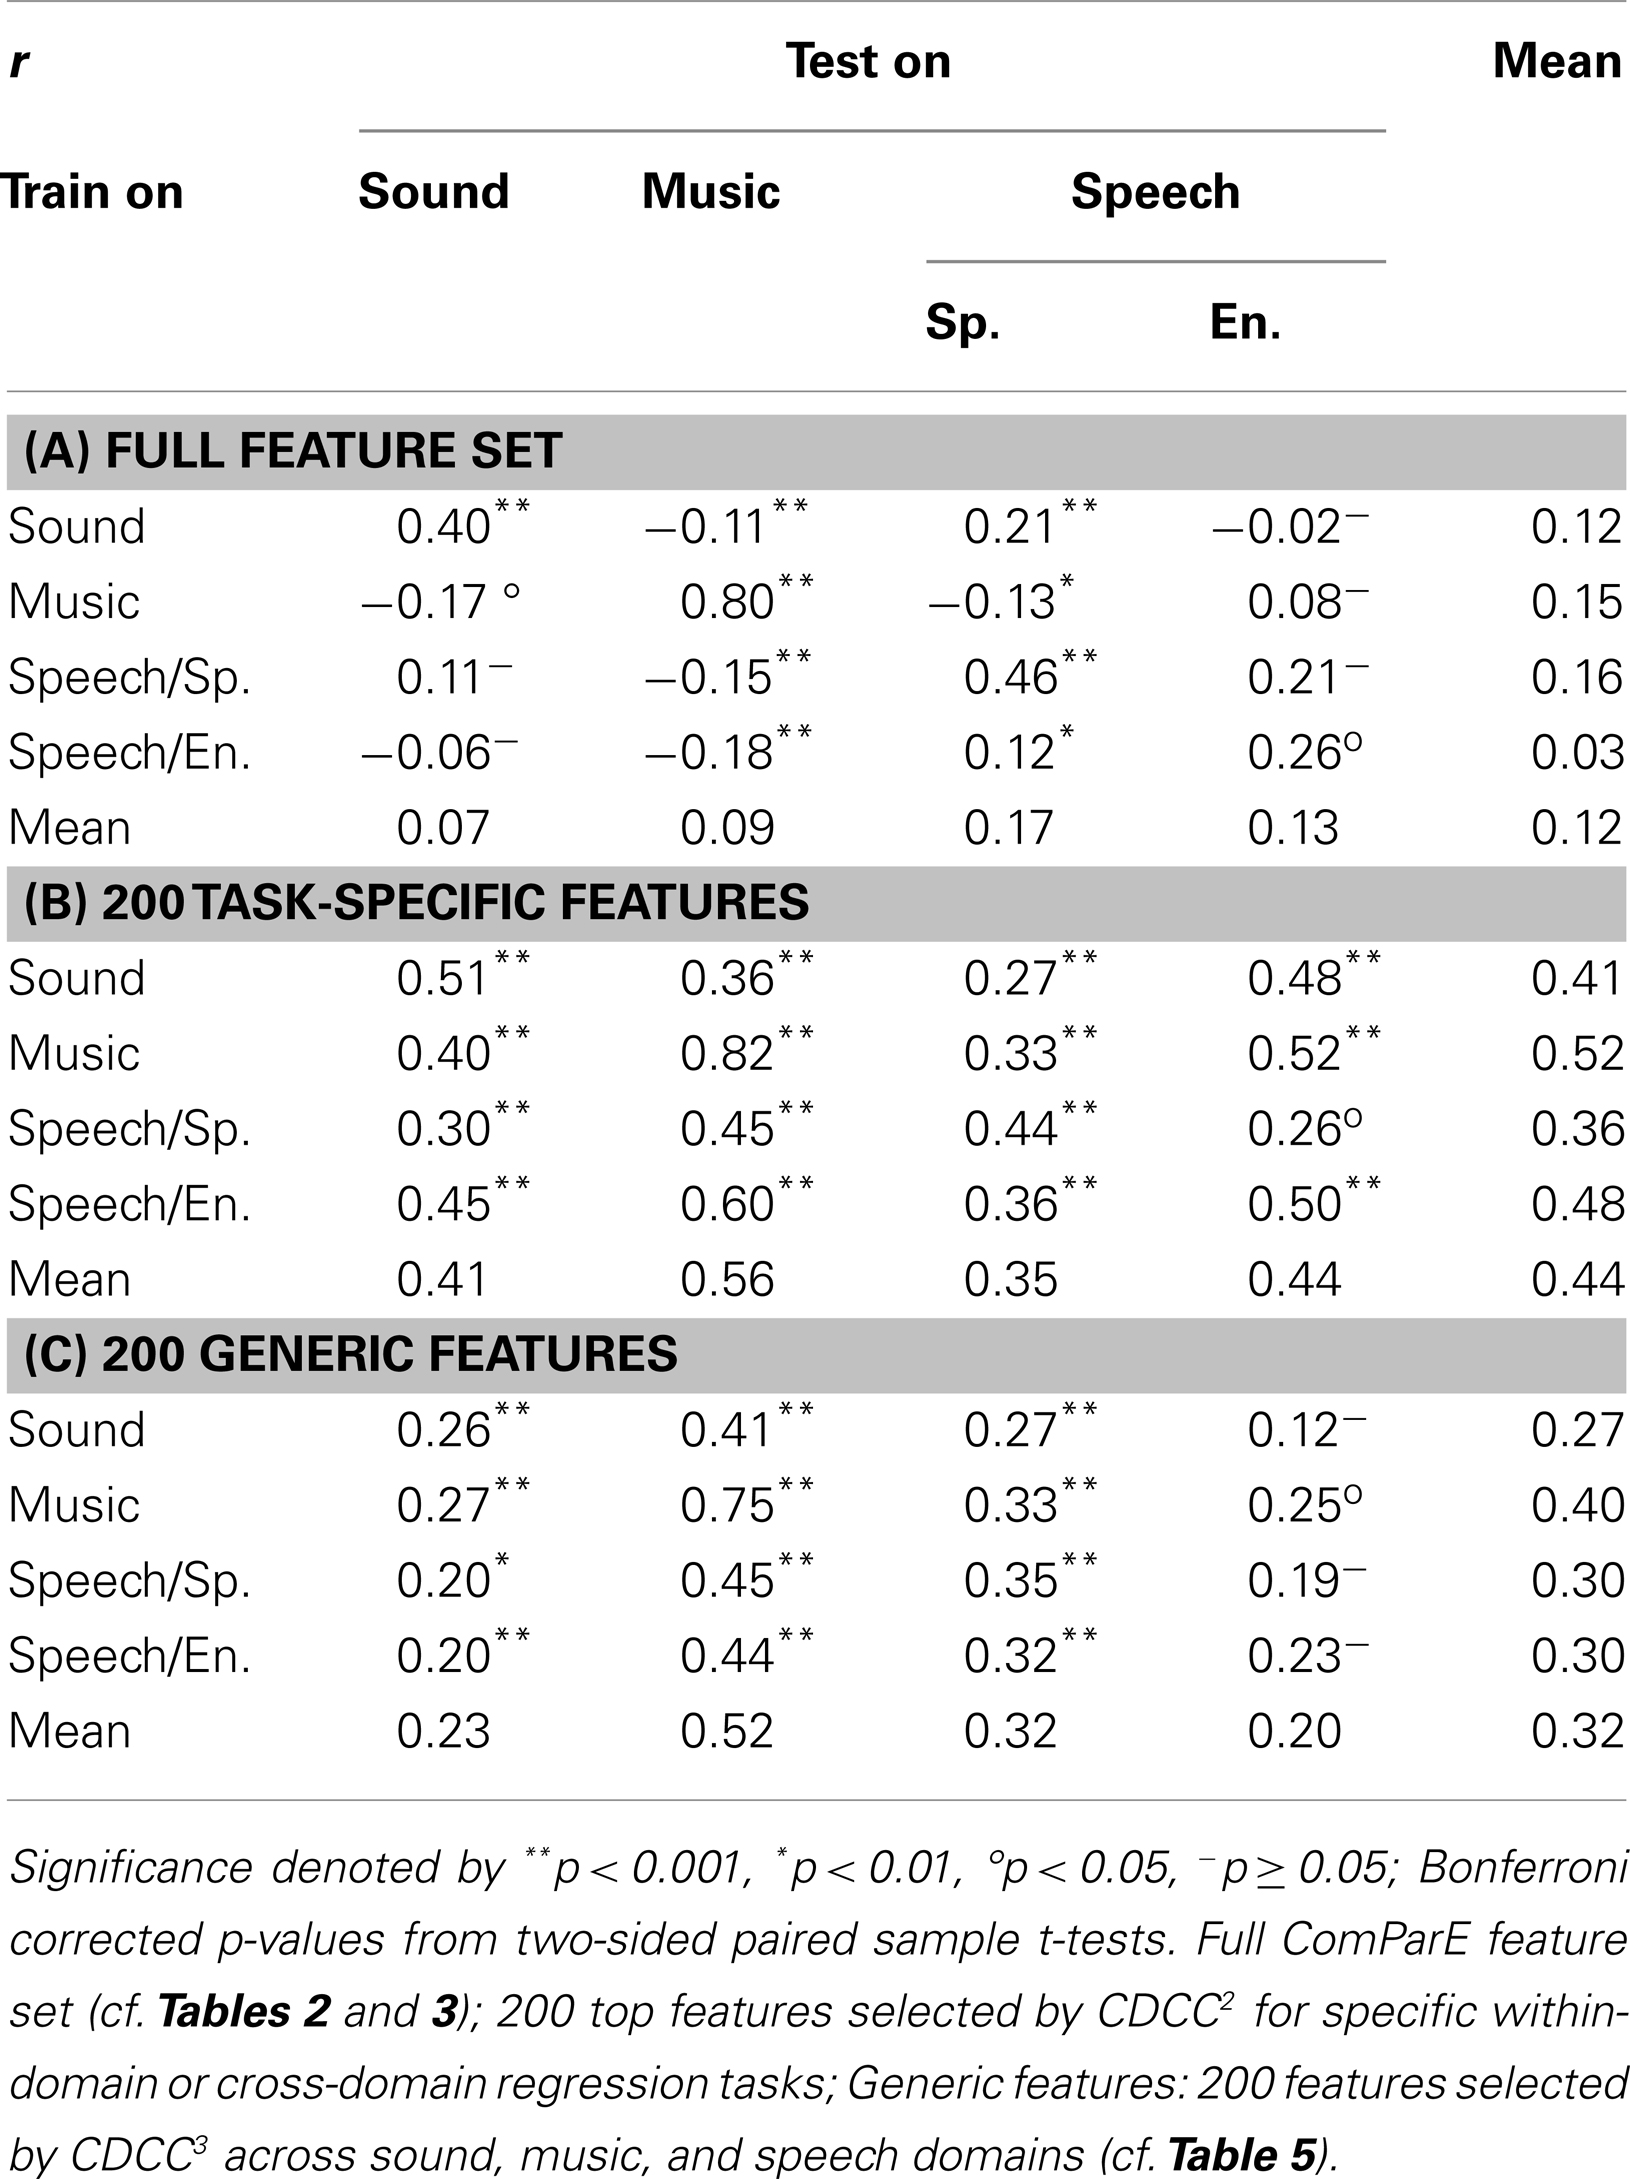 Frontiers | On the Acoustics of Emotion in Audio: What Speech, Music